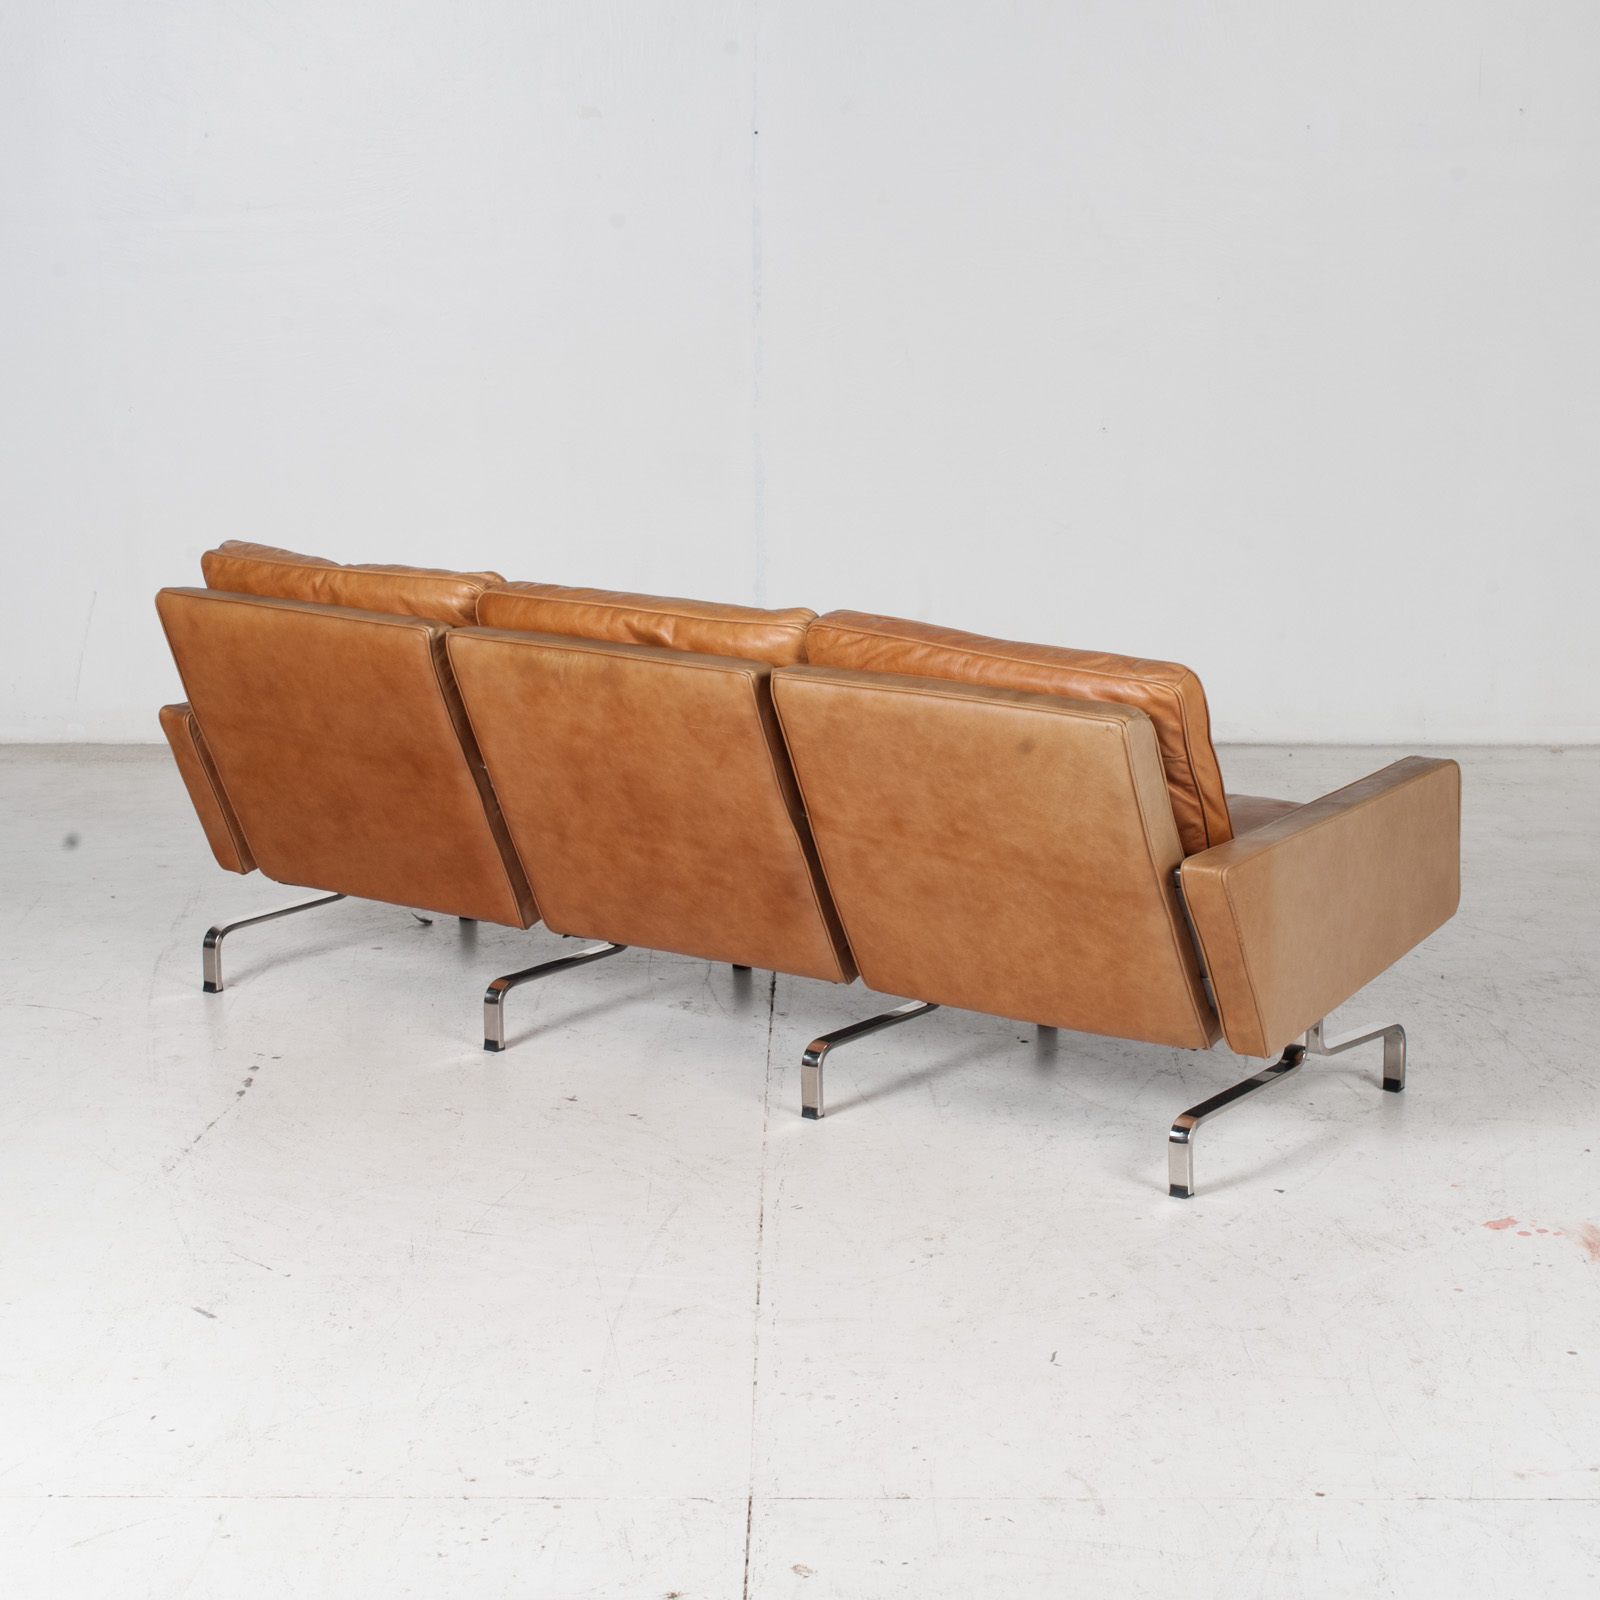 3 Seat Sofa By Poul Kjaerholm For Ejvind Kold Christensen In Tan Leather And Chrome, 1960s, Denmark 9